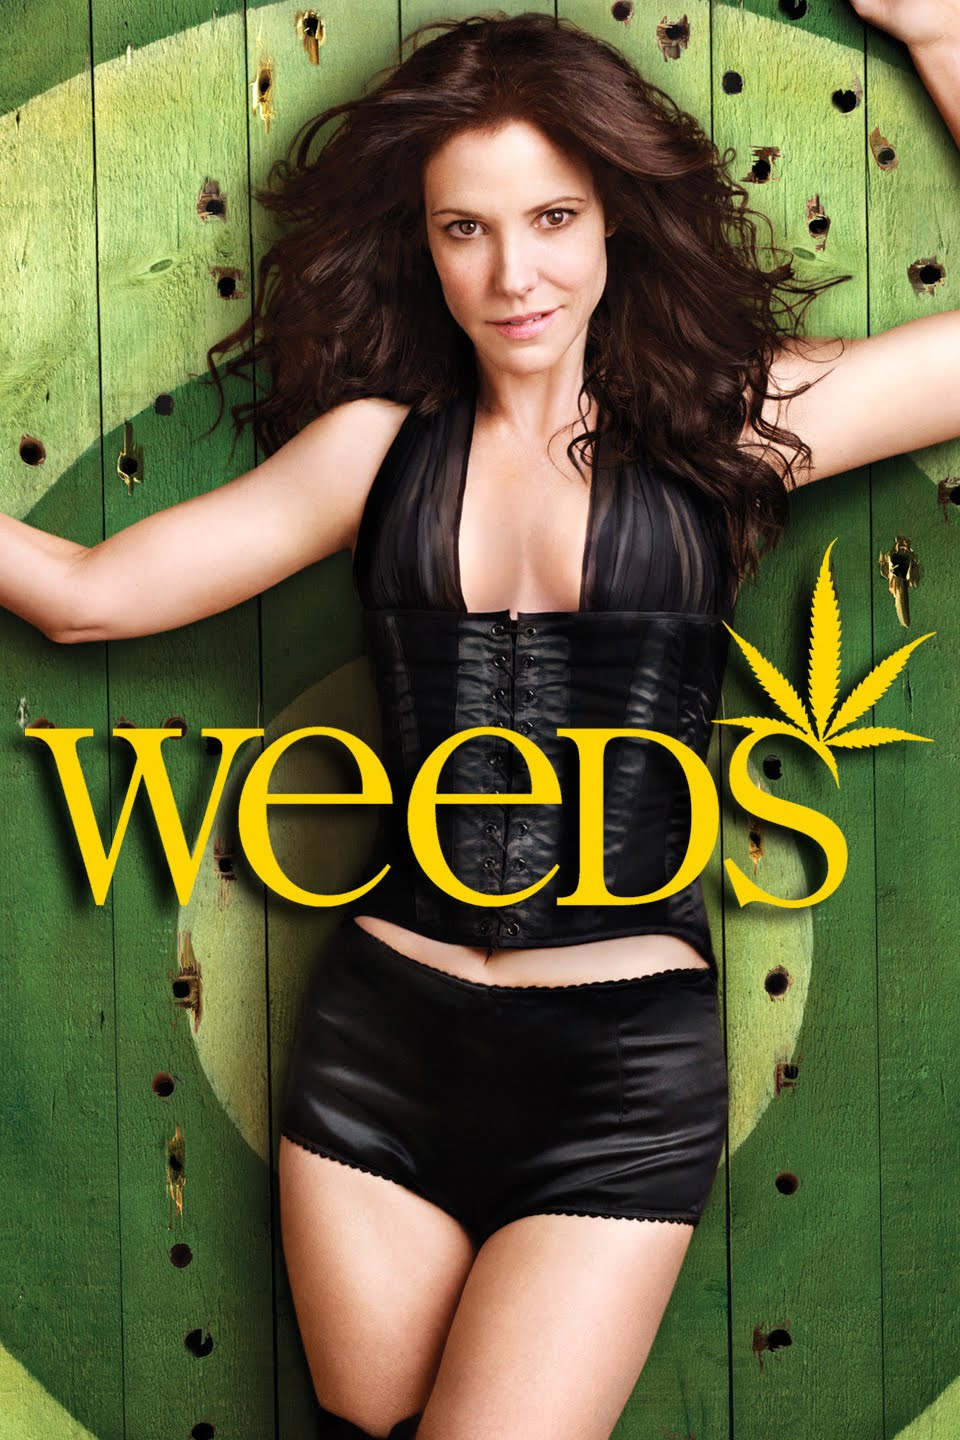 Weeds Season 1 Download Complete 480p HDTV